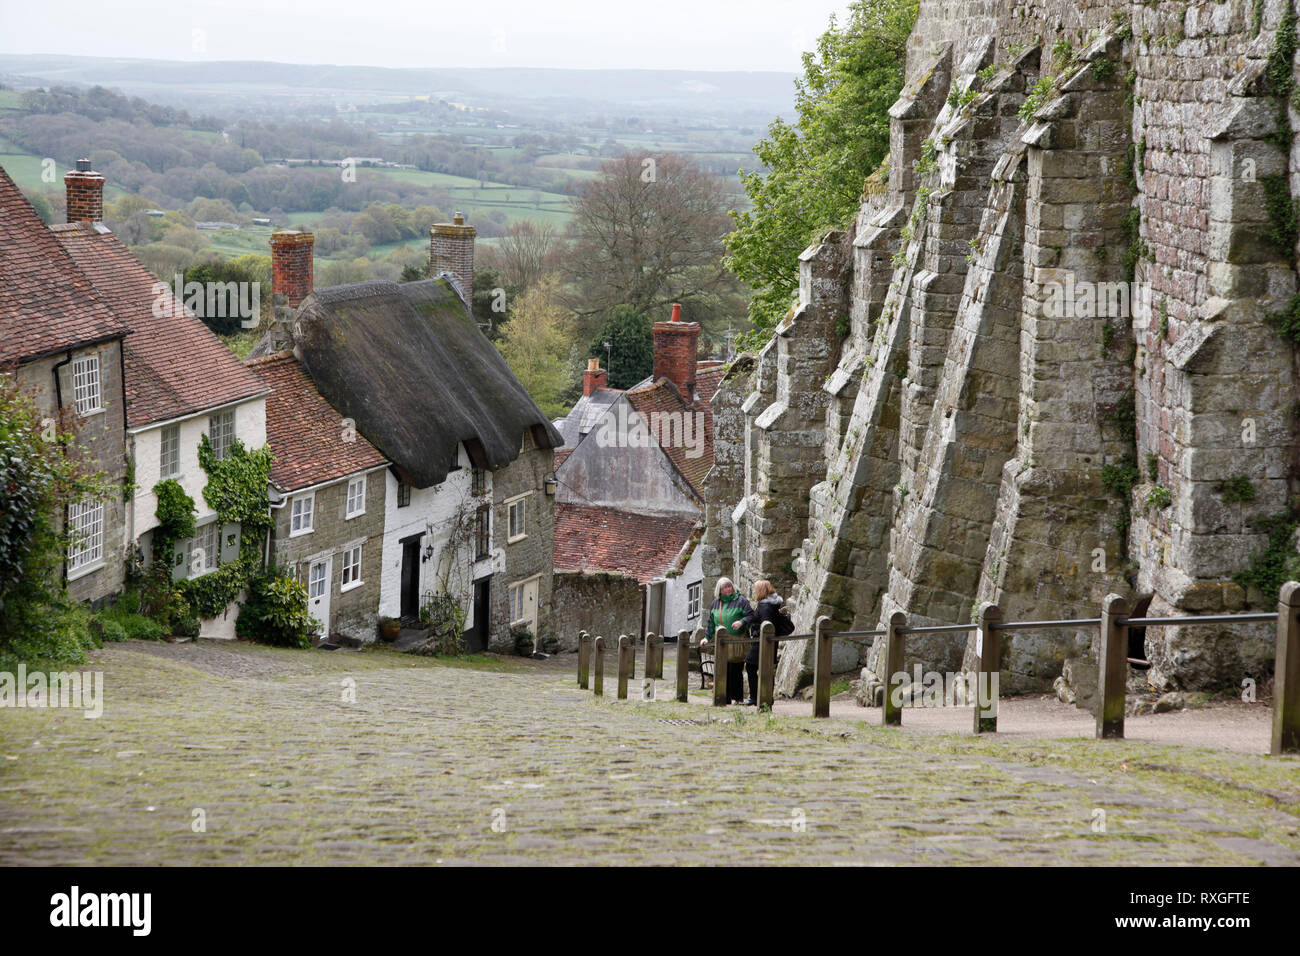 View down steep Gold Hill, with quaint and thatched roofed cottages in Shaftesbury, Dorset, England, UK - Stock Image